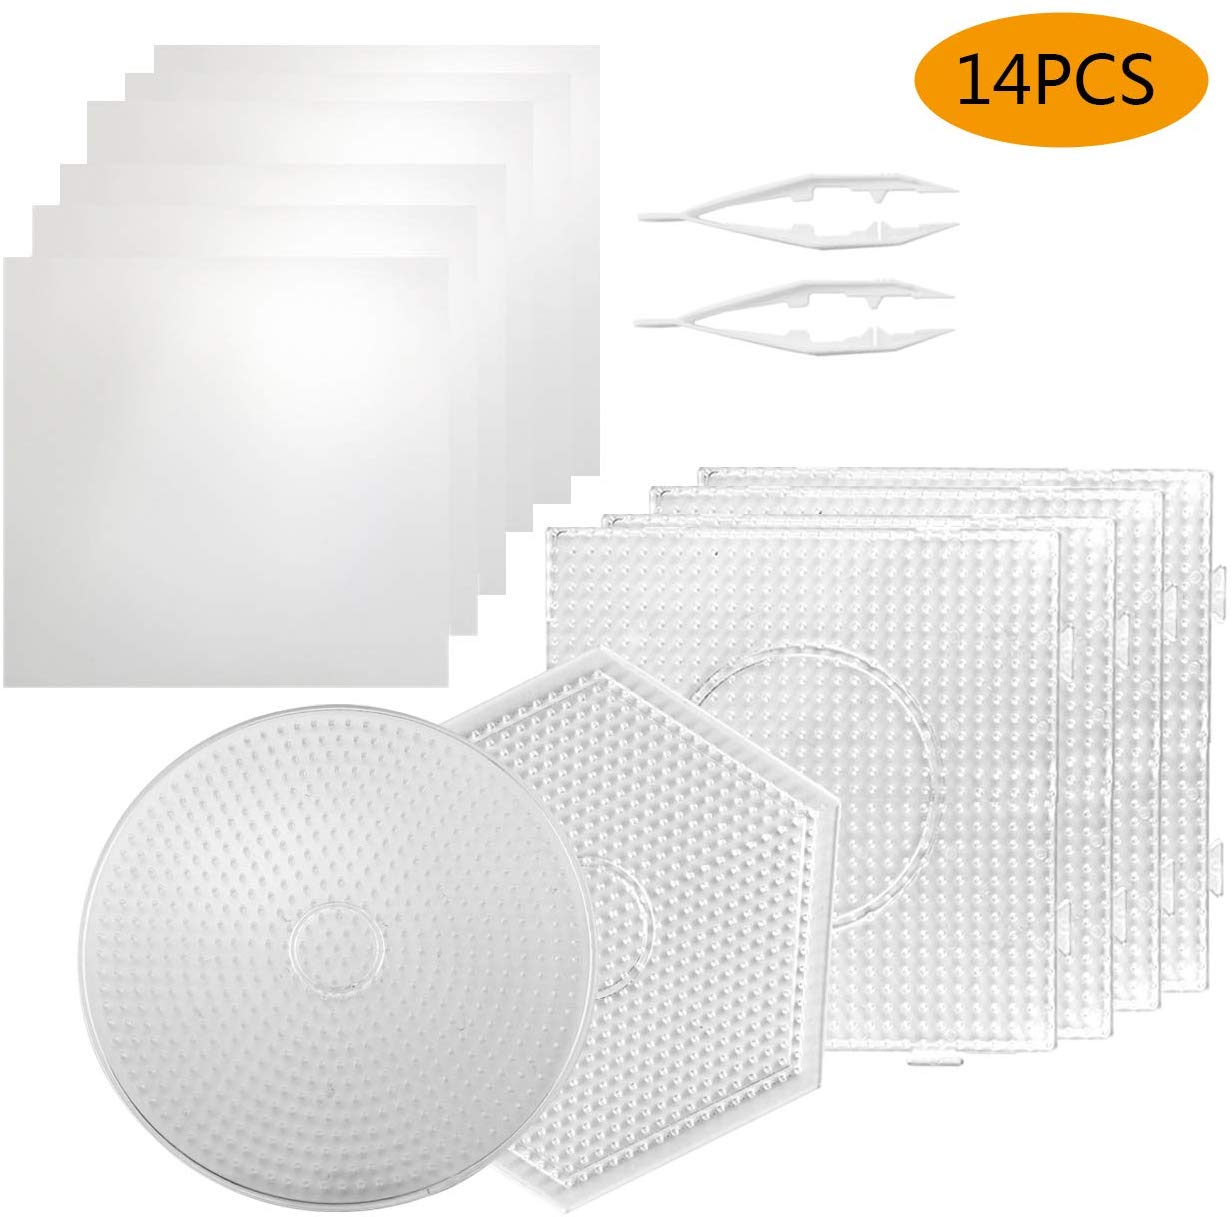 6Pcs 5mm Hama Beads Pegboards Large Clear Plastic Fuse Beads Boards With 6 Ironing Paper /2 White Beads Tweezers For DIY Puzzle